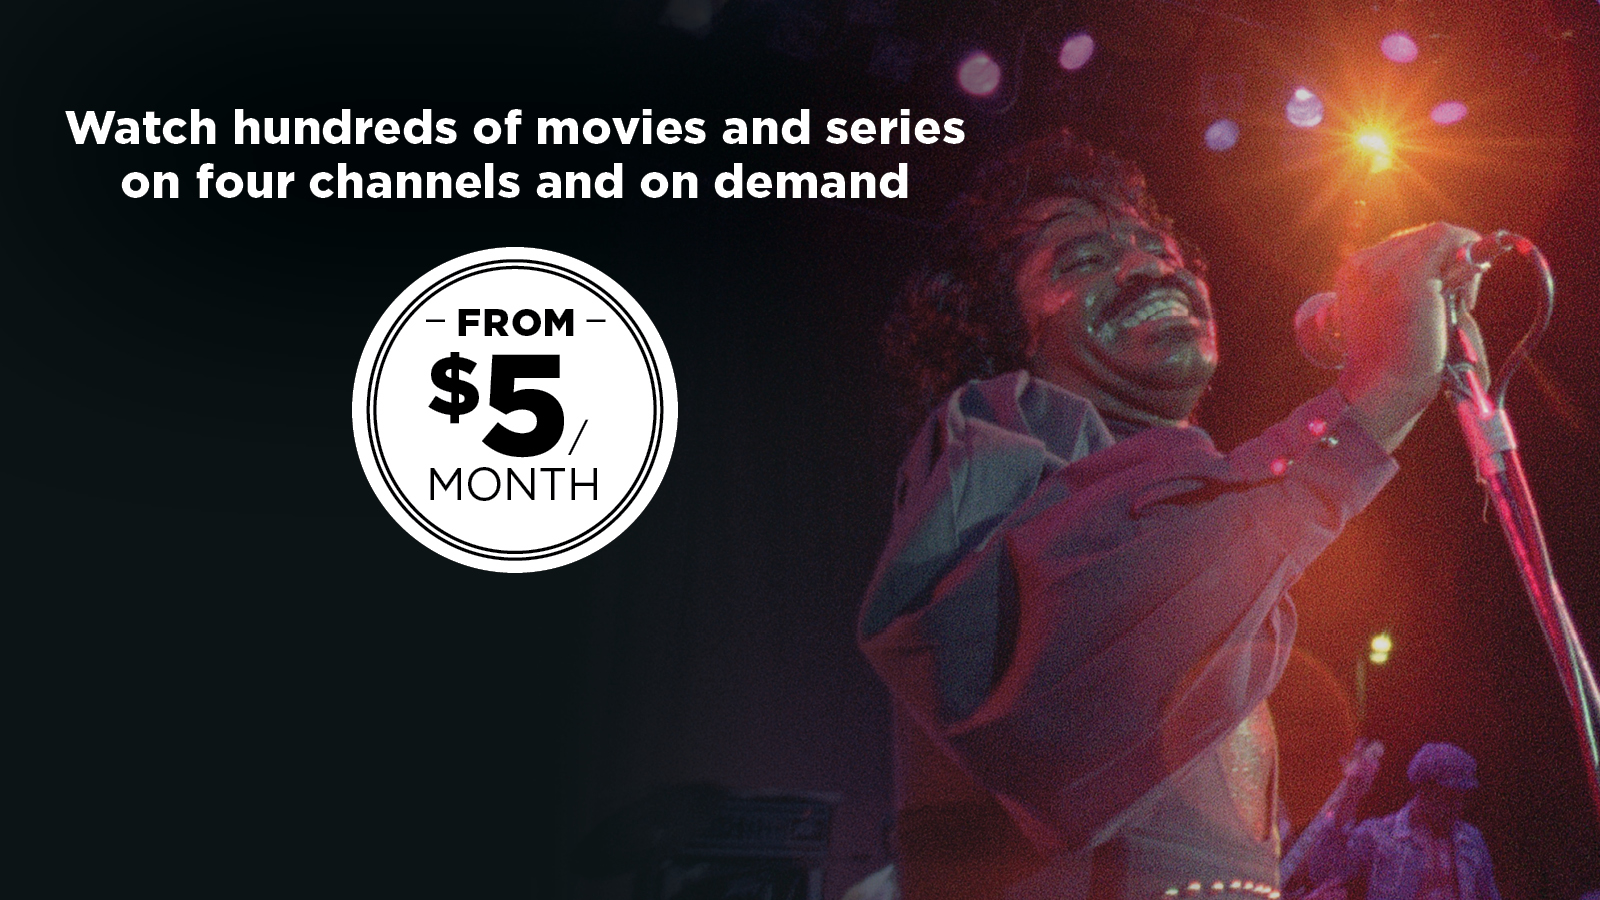 Watch hundreds of movies and series on four channels and on demand from $5/month